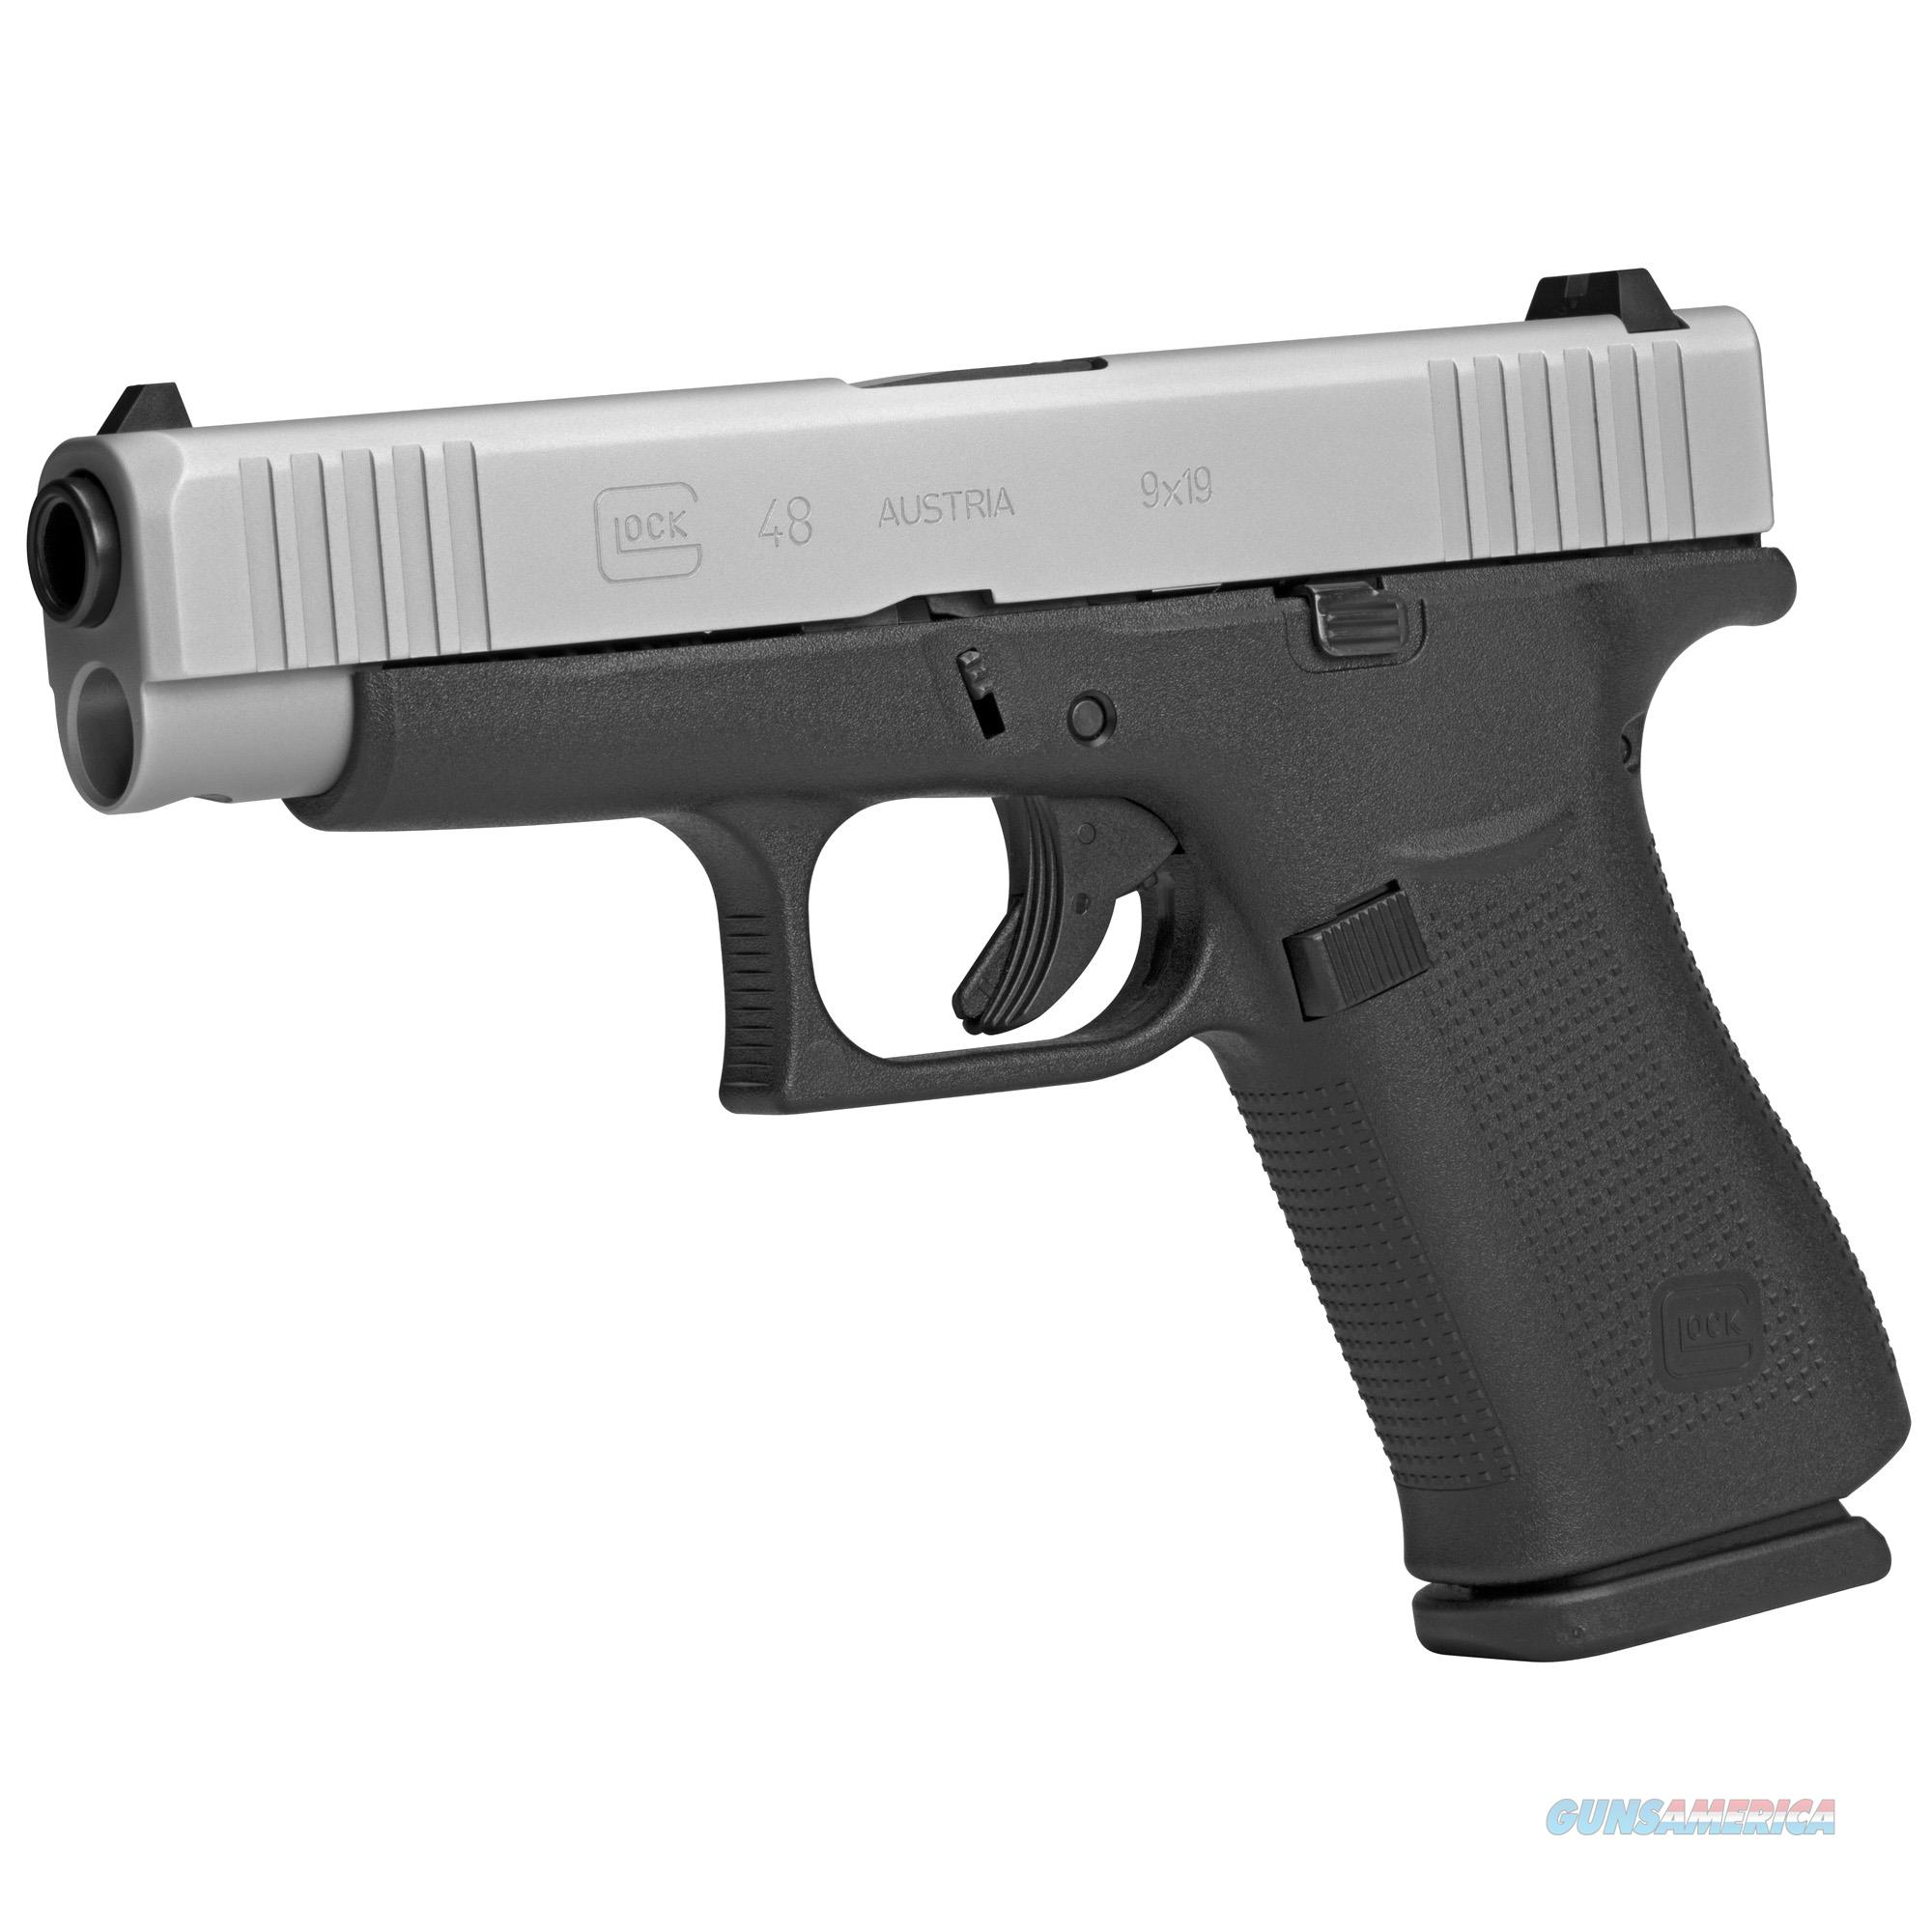 "Glock G48 Compact 9mm 4.17"" 10+1 Silver PVD Slide - New in Case!  Guns > Pistols > Glock Pistols > 48"